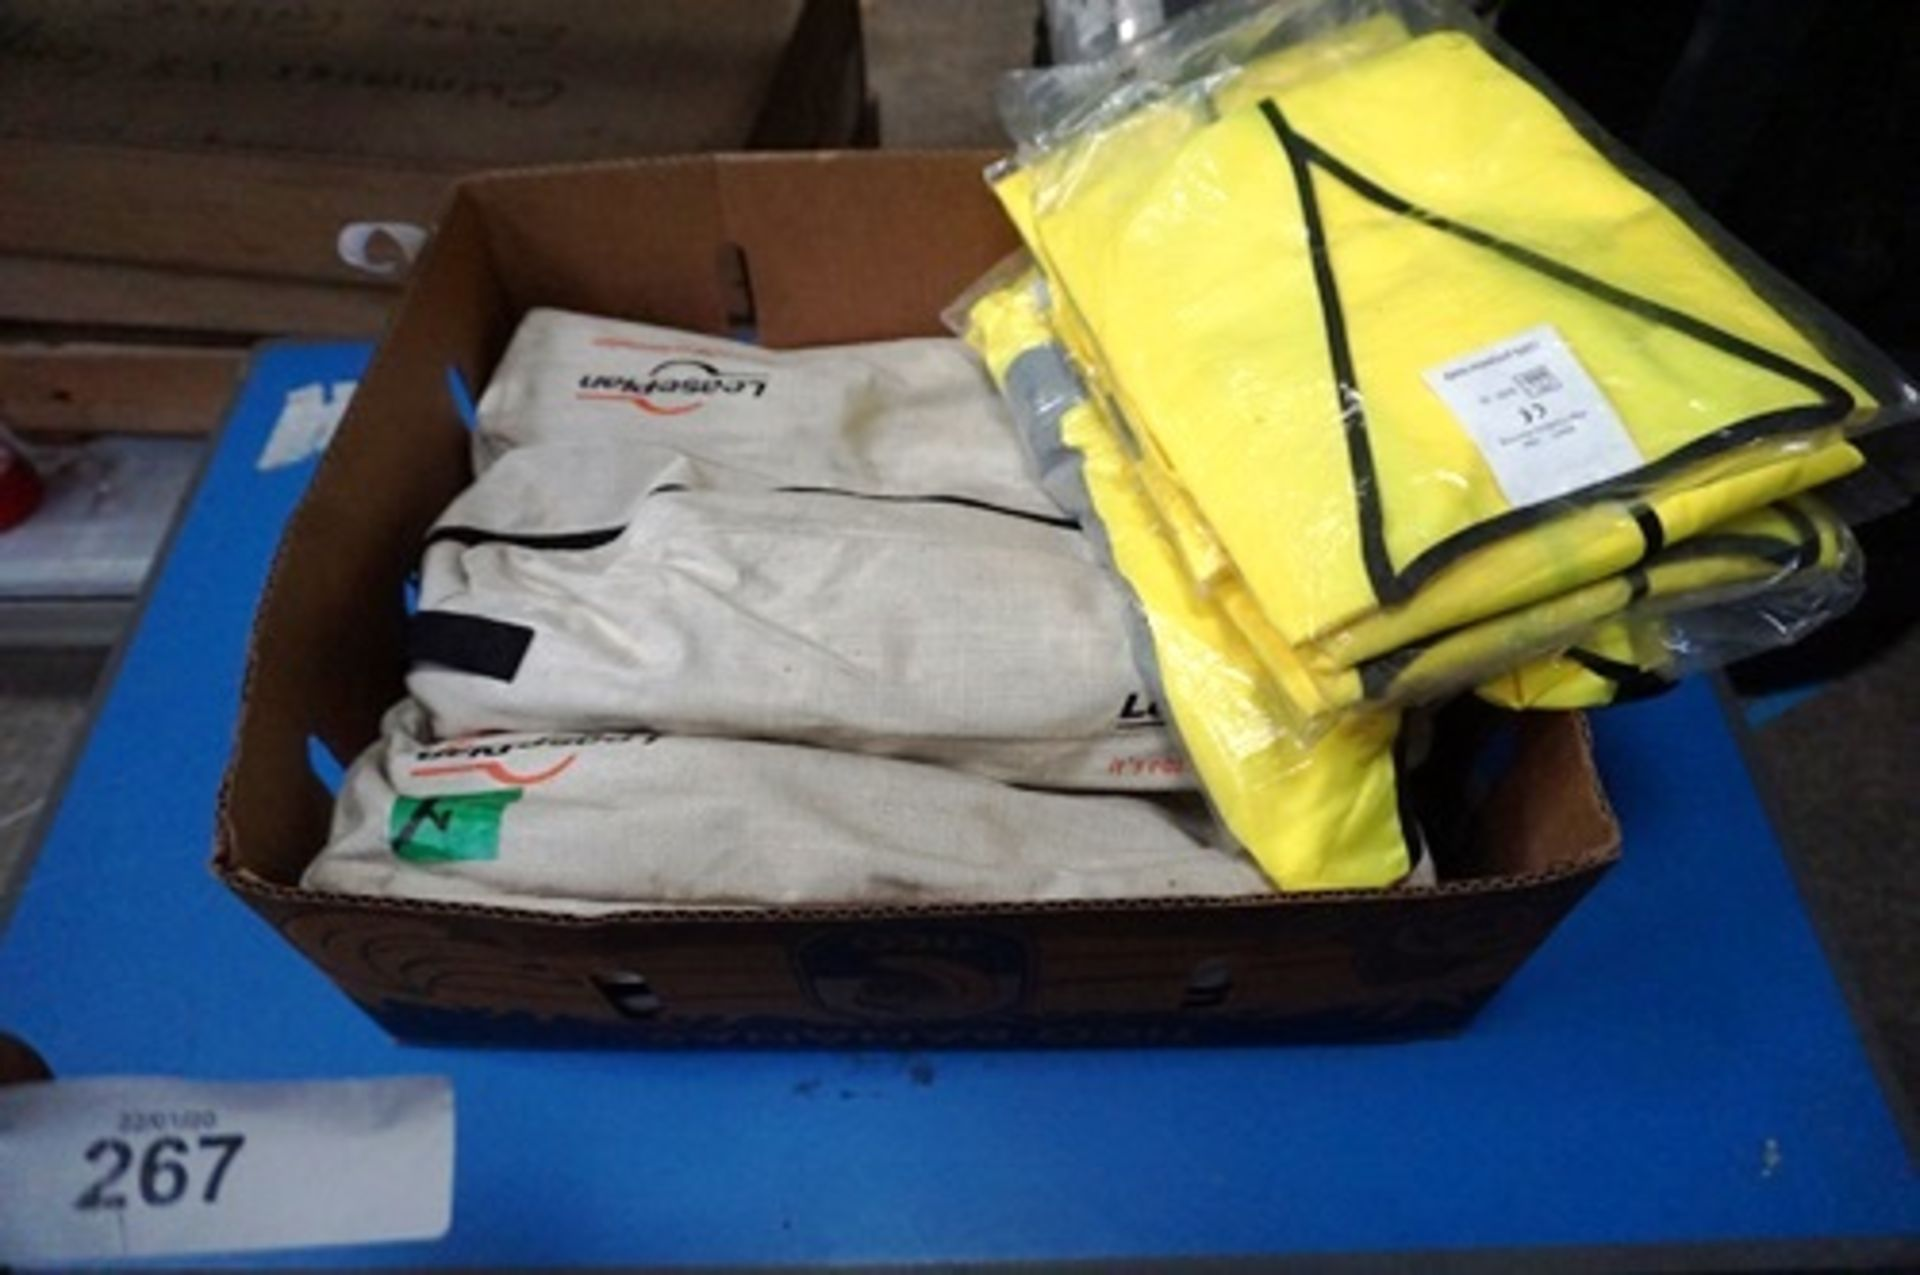 Lot 267 - 3 x Leaseplan emergency road kits - New (GS5)